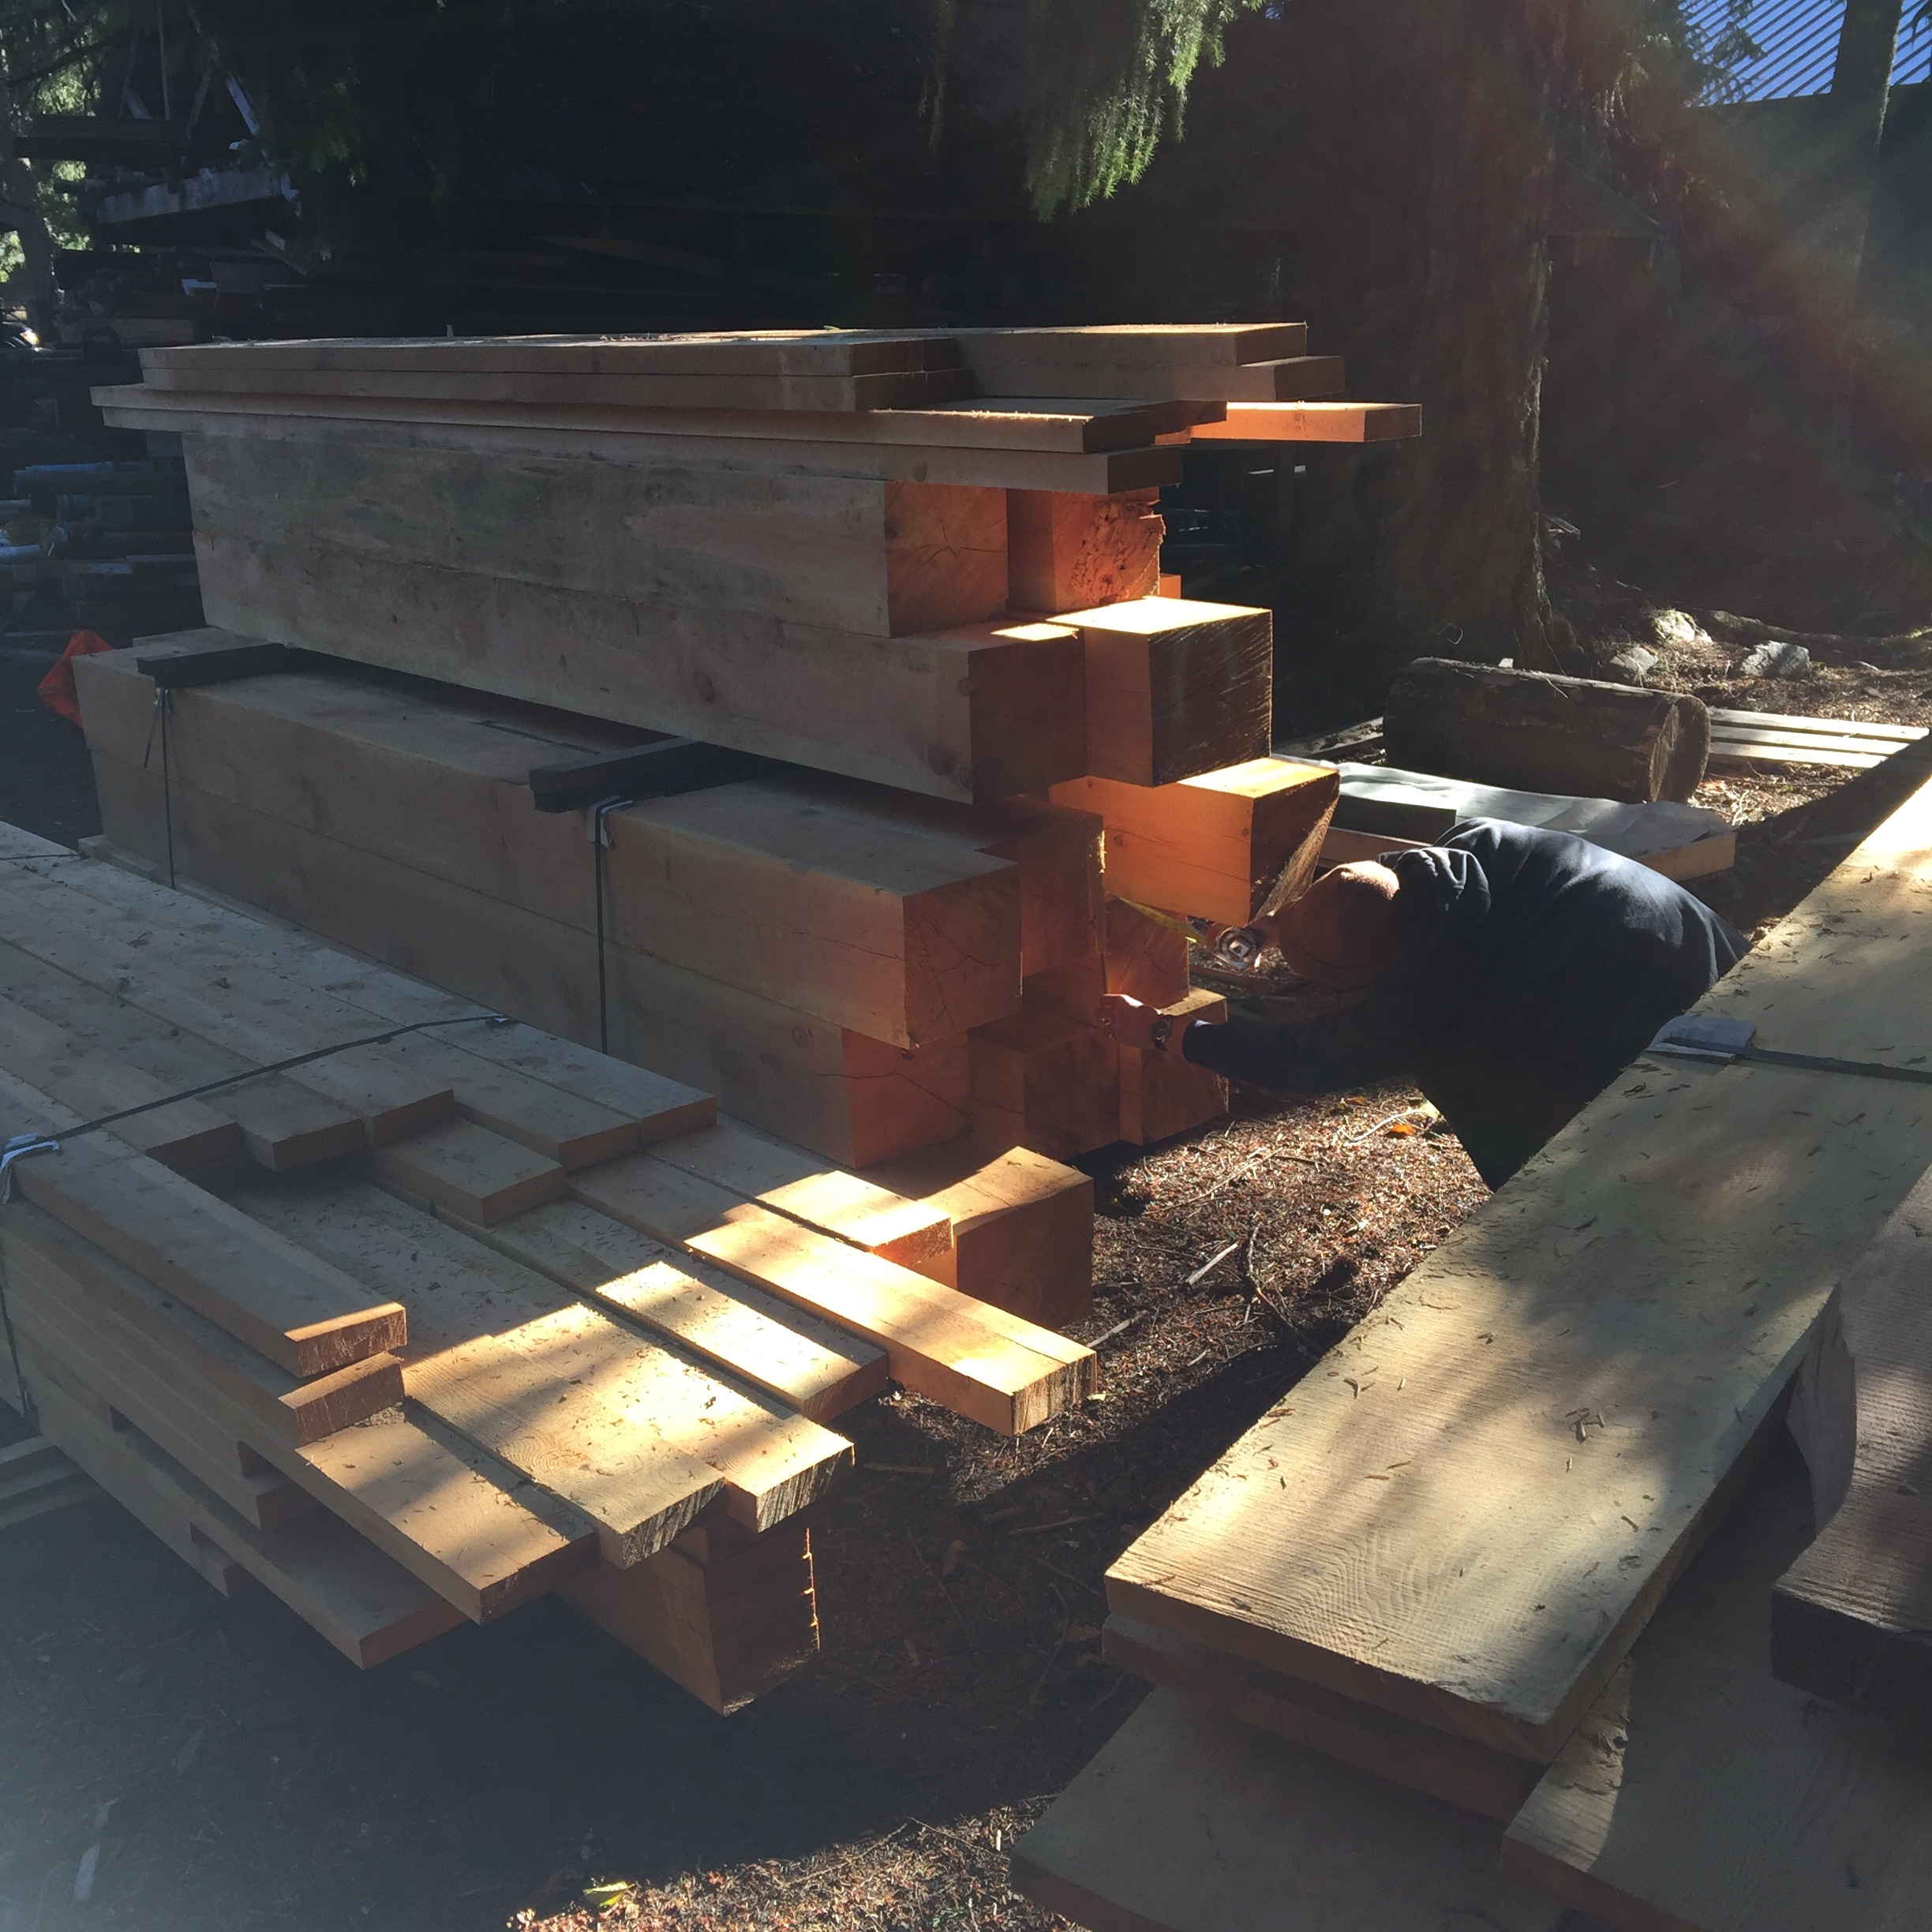 Selecting lumber for in-kind replacement